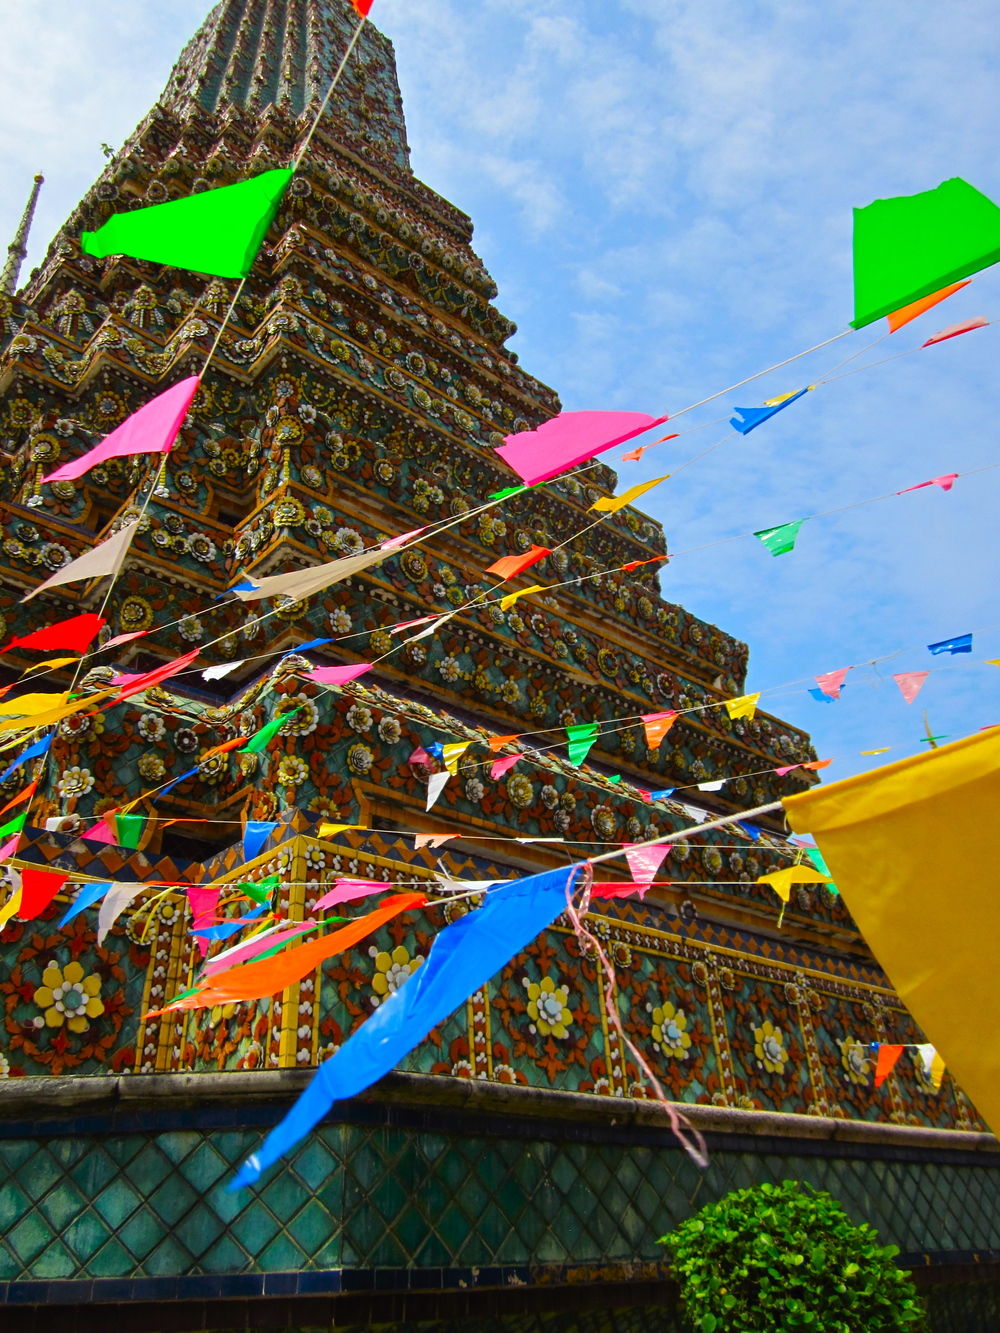 Decorations strung up at the Wat Pho temple in Bangkok, Thailand